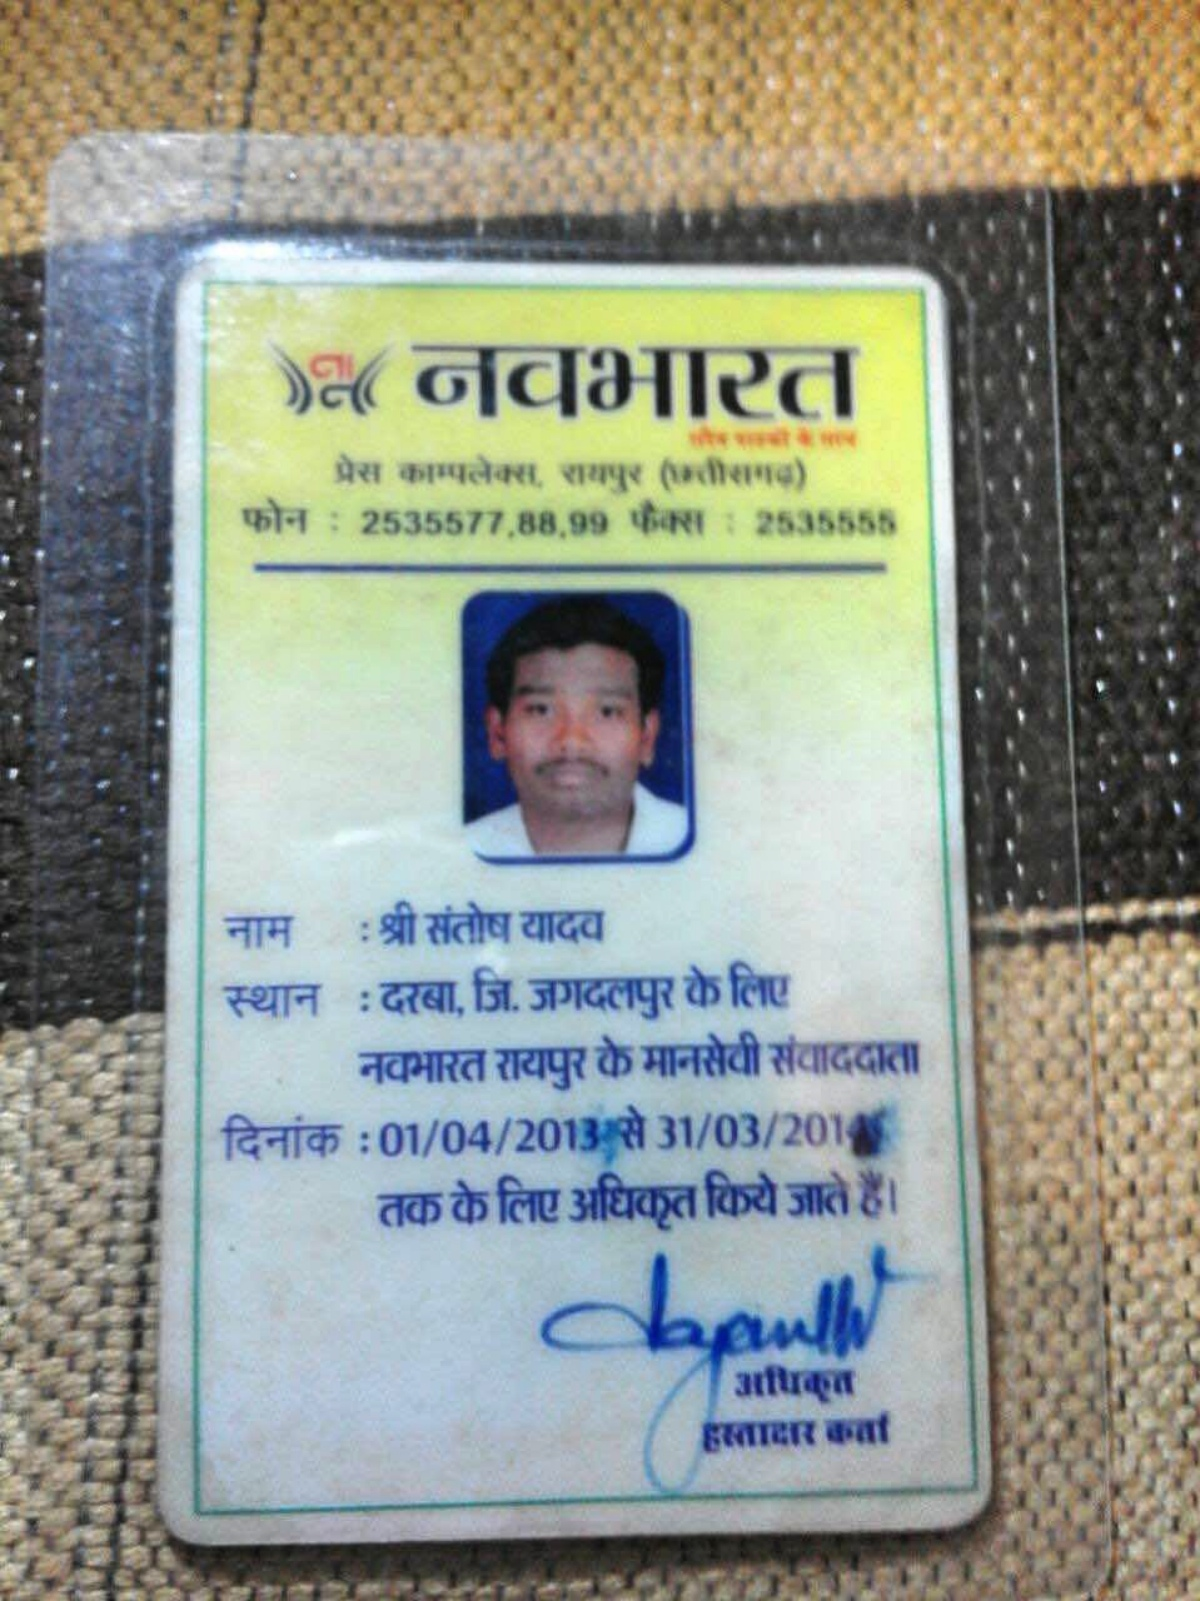 Santosh Yadav's press identity card.